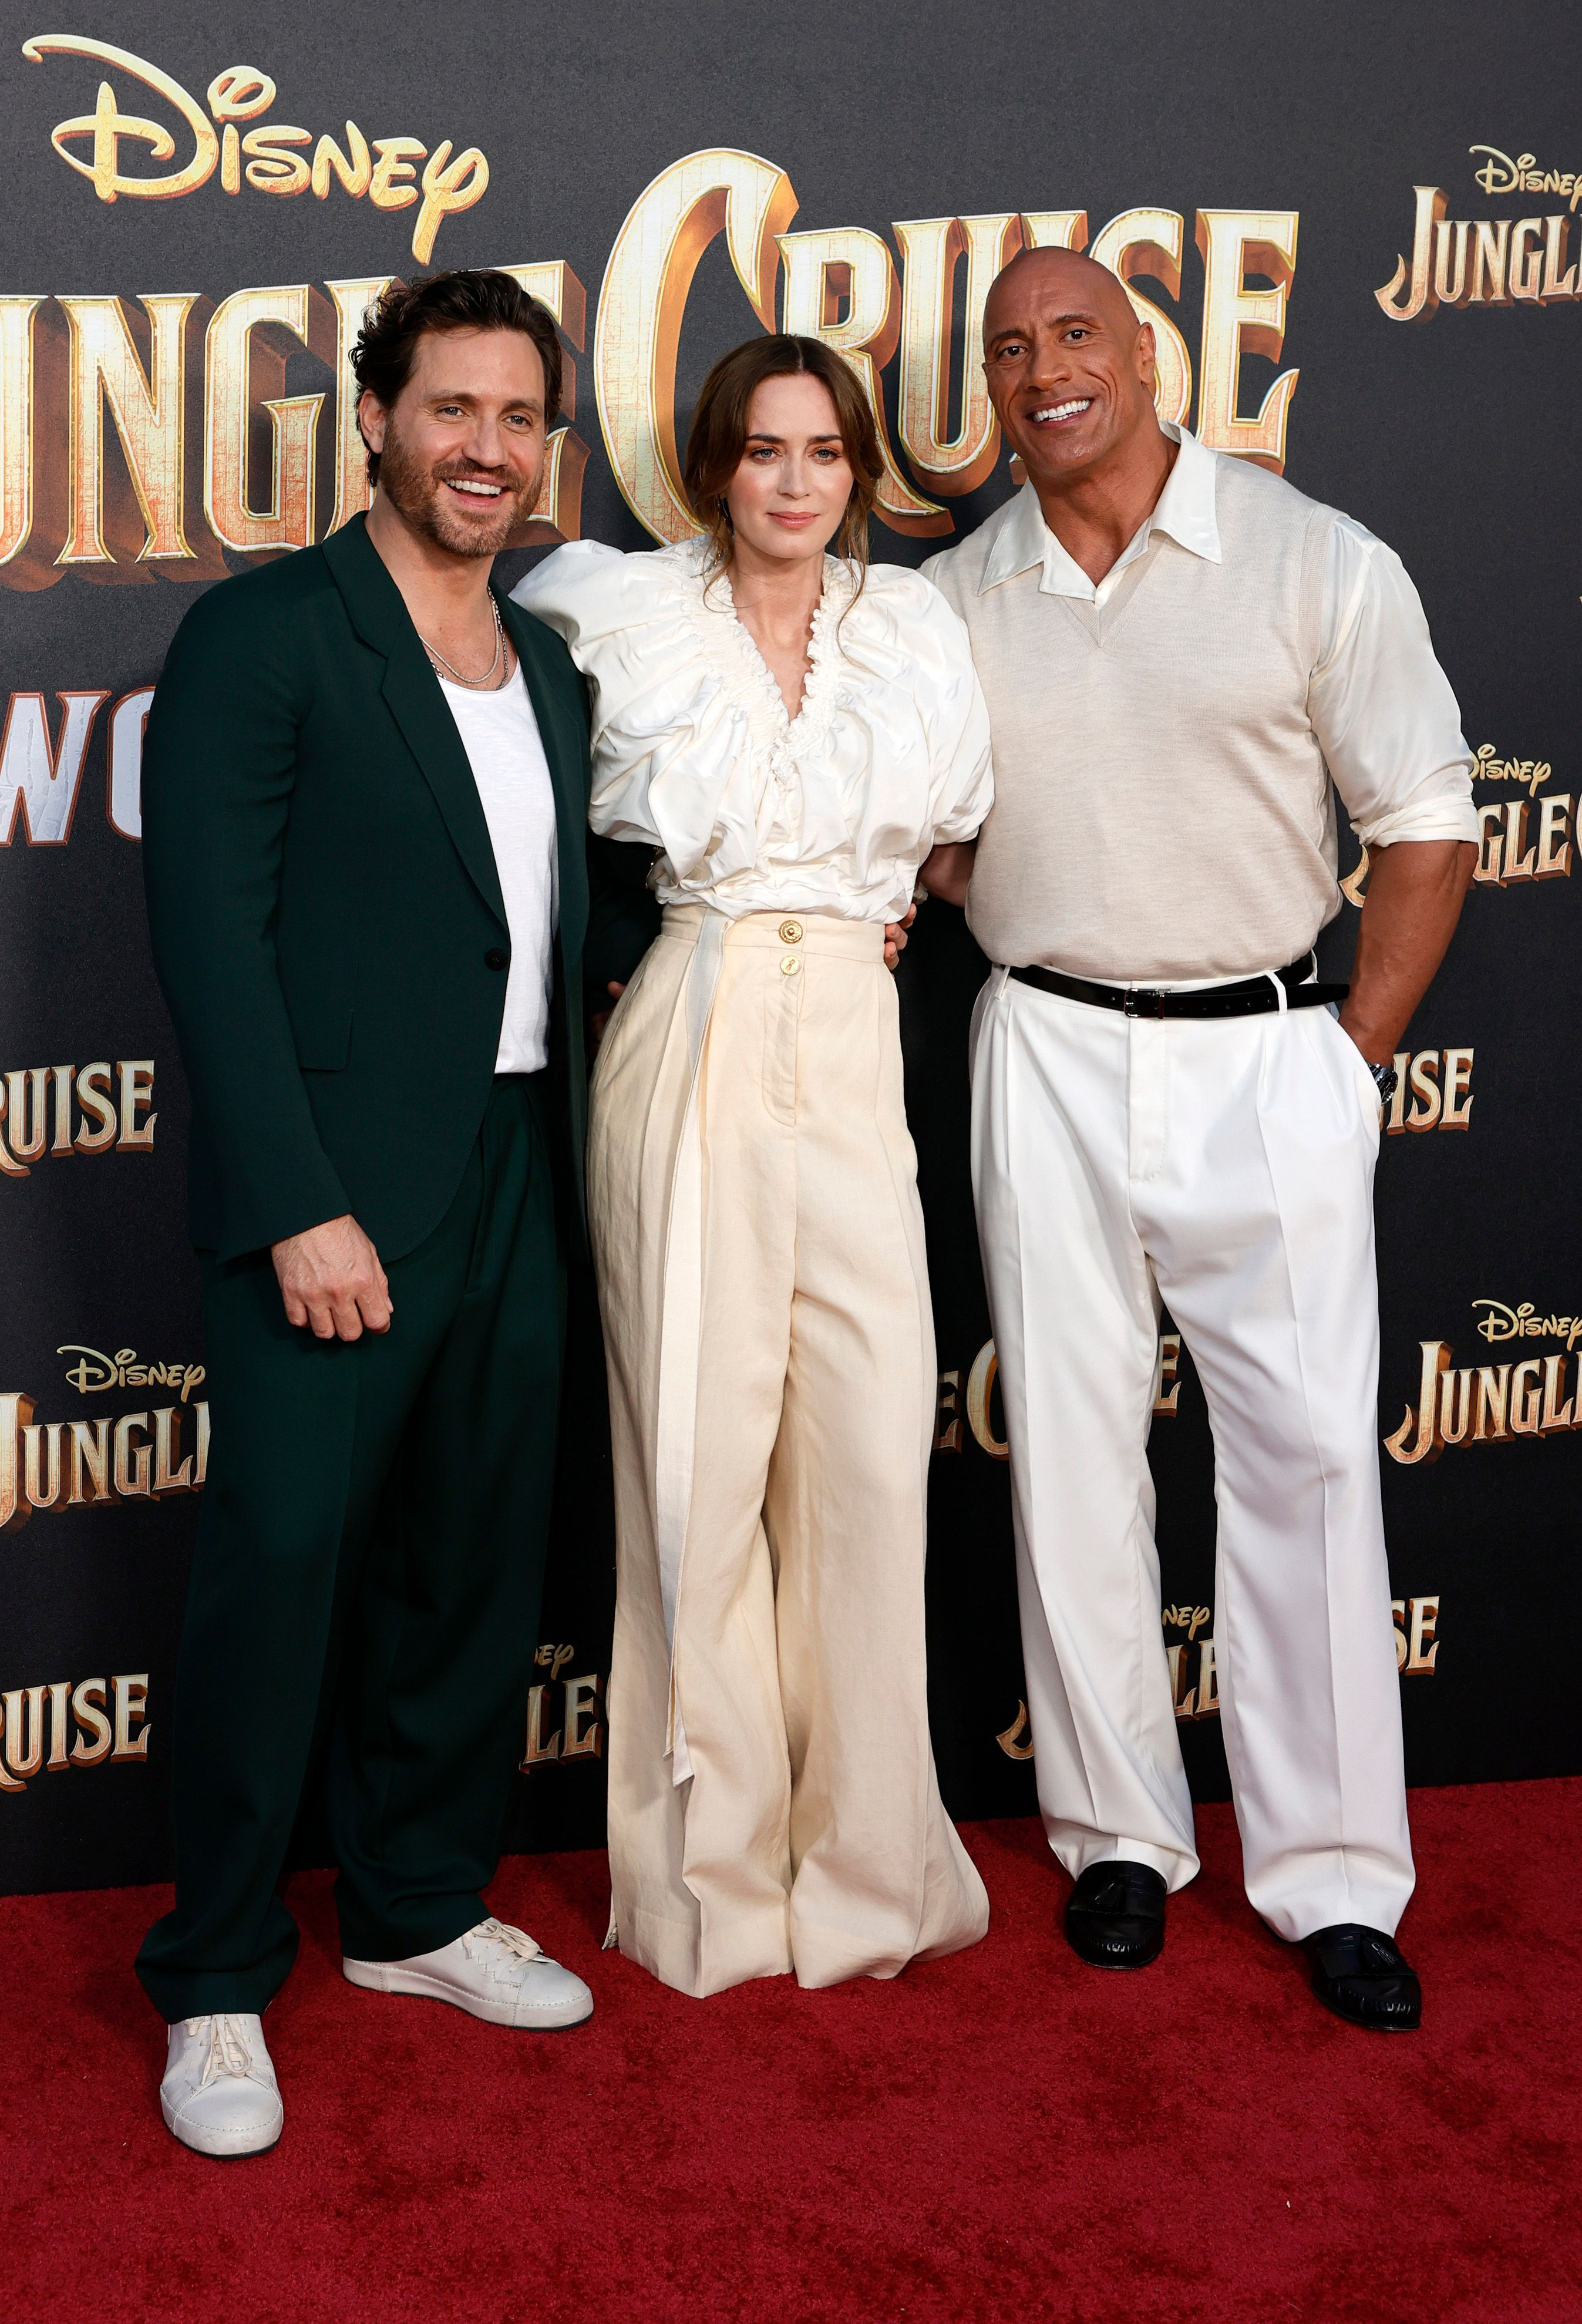 Dwayne Johnson, Edgar Ramírez, and Emily Blunt at an event for Jungle Cruise (2021)